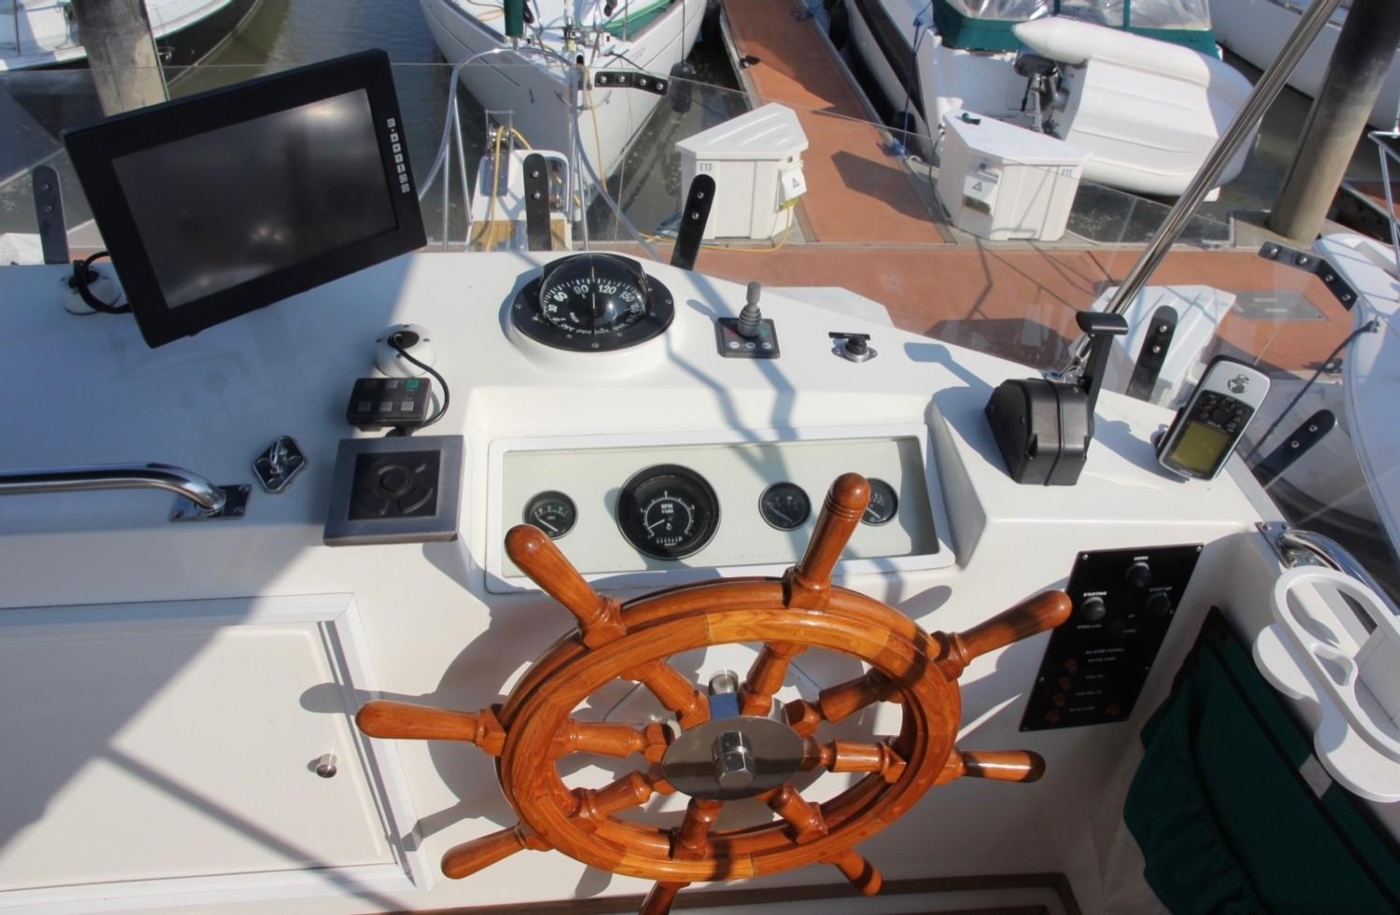 1995 Grand Banks Classic, Flybridge Helm Station